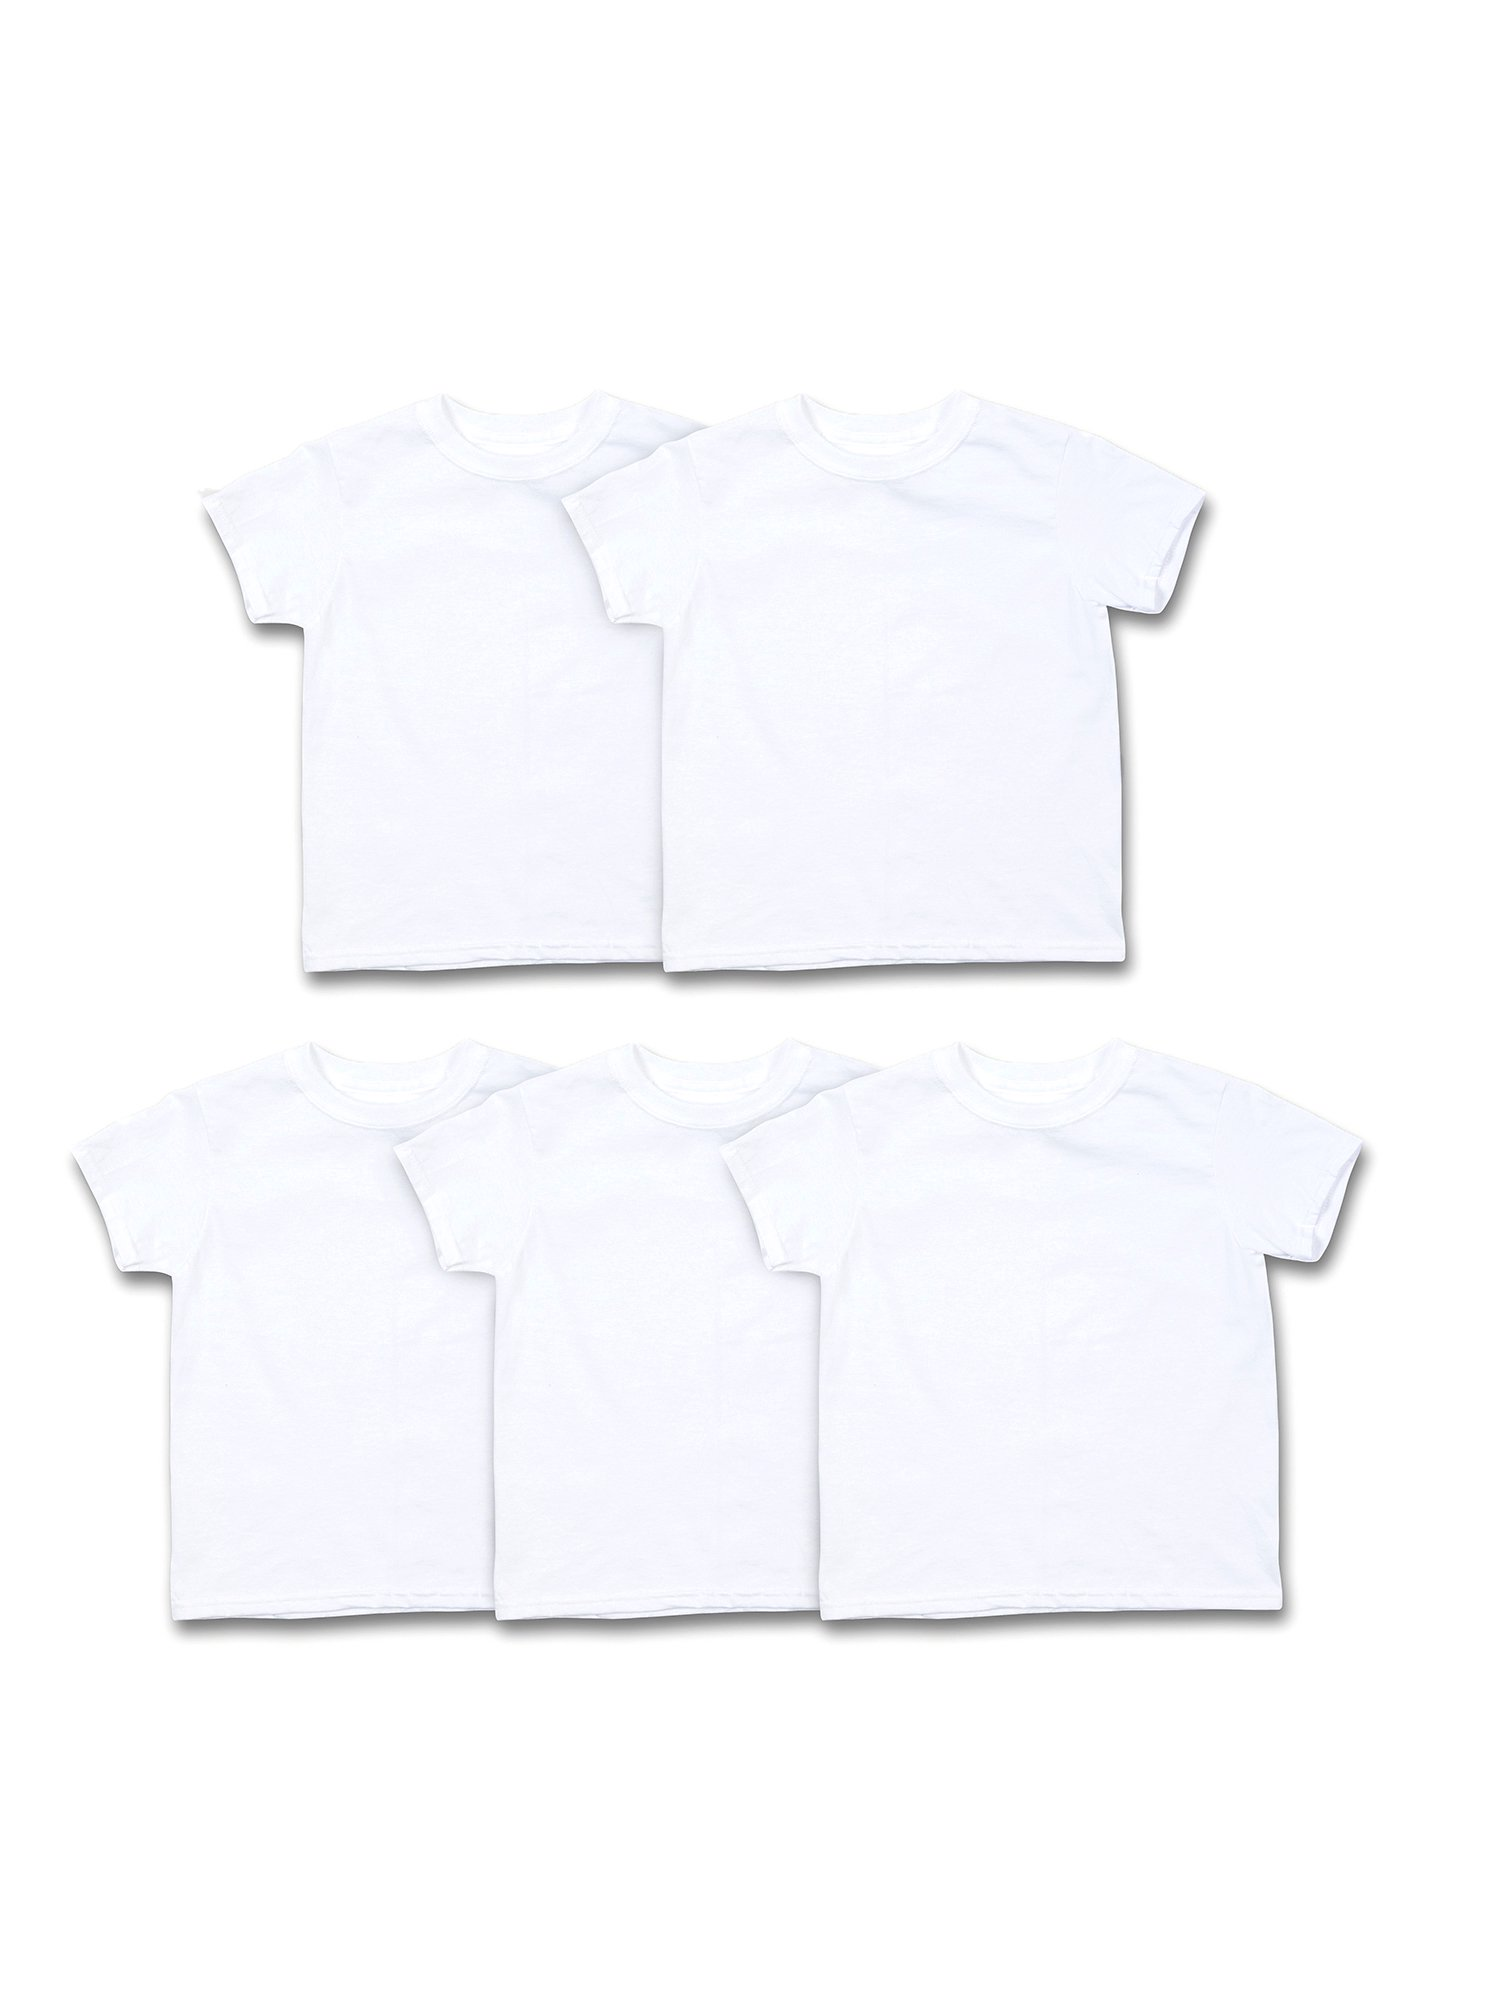 Hanes Boys Undershirts, 5 Pack ComfortSoft Short Sleeve Crewneck Tagless Undershirts (Little Boys & Big Boys)